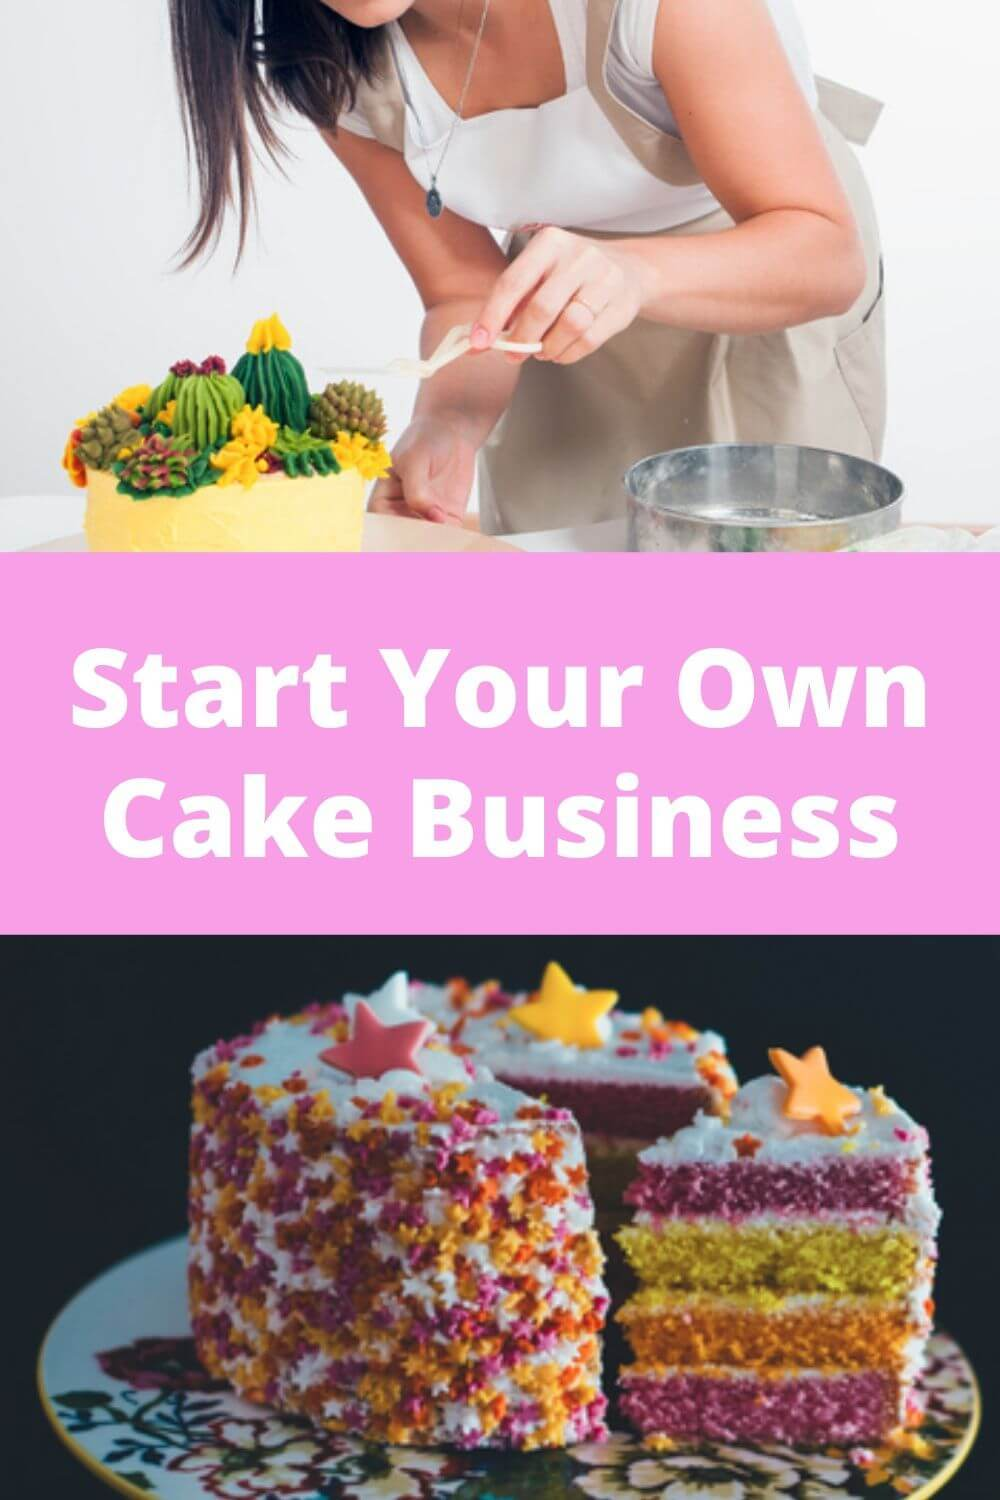 Start your own cake business